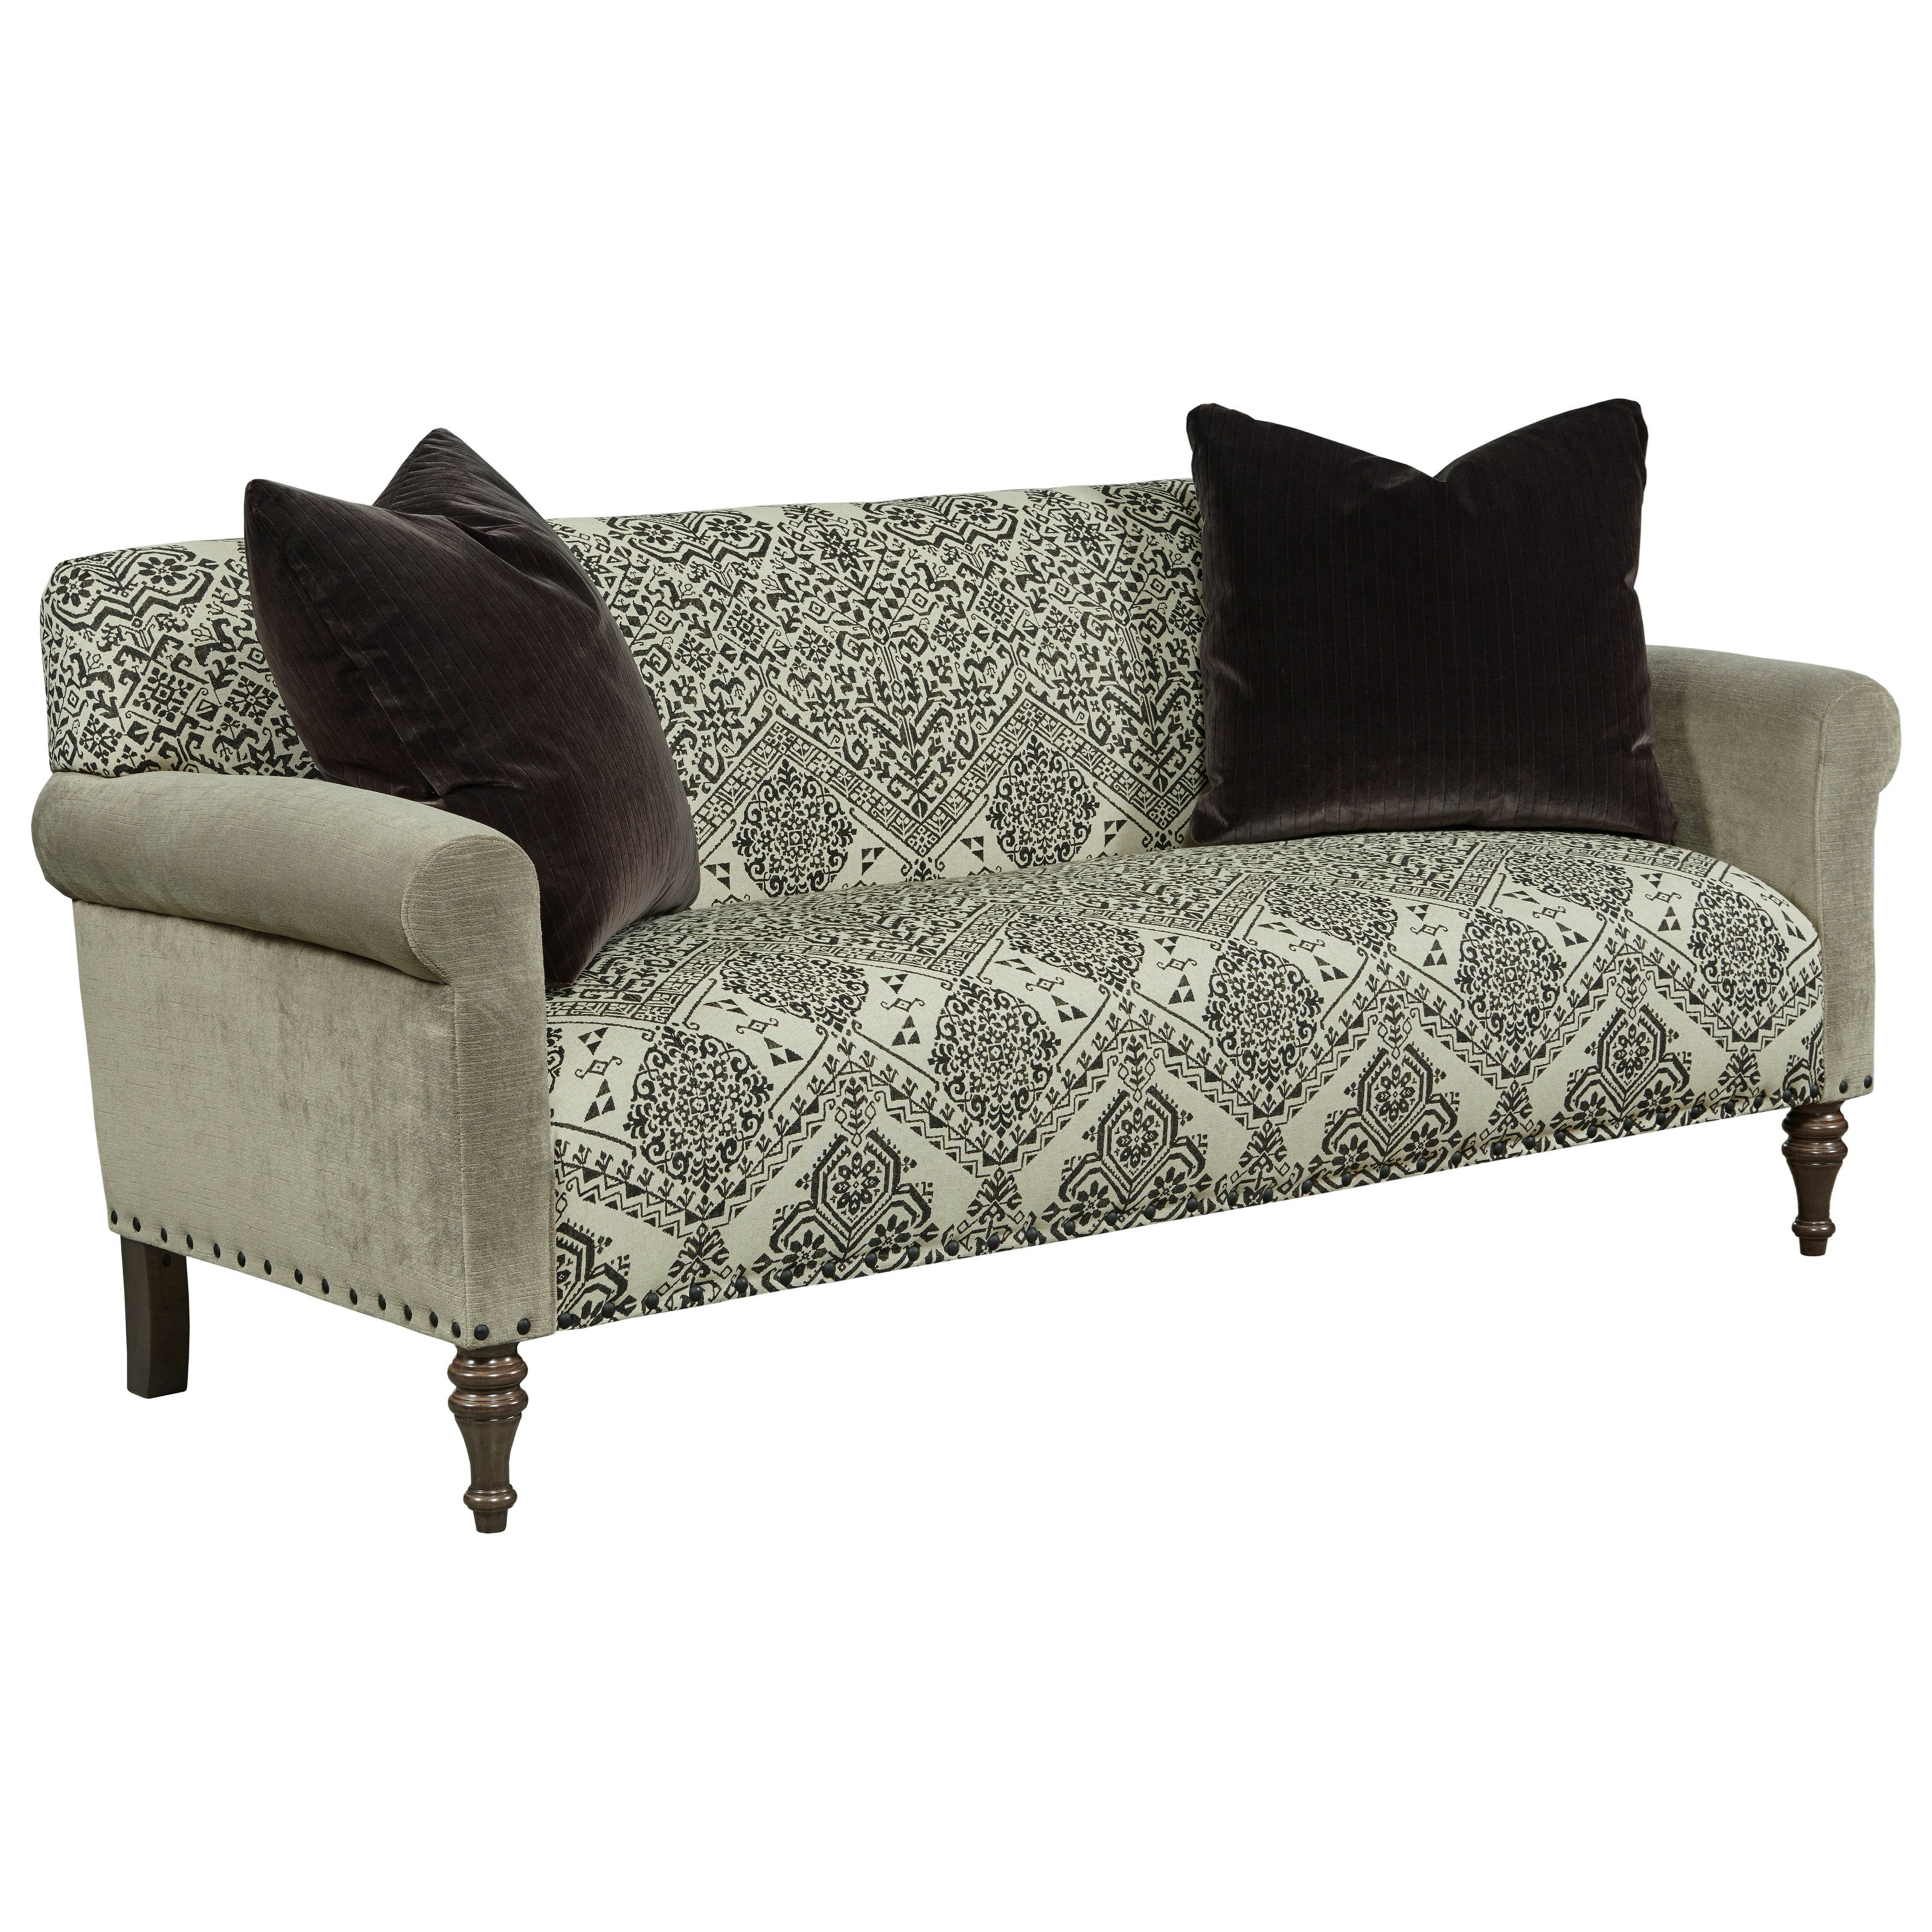 Aldrich Settee by Kincaid Furniture at Johnny Janosik